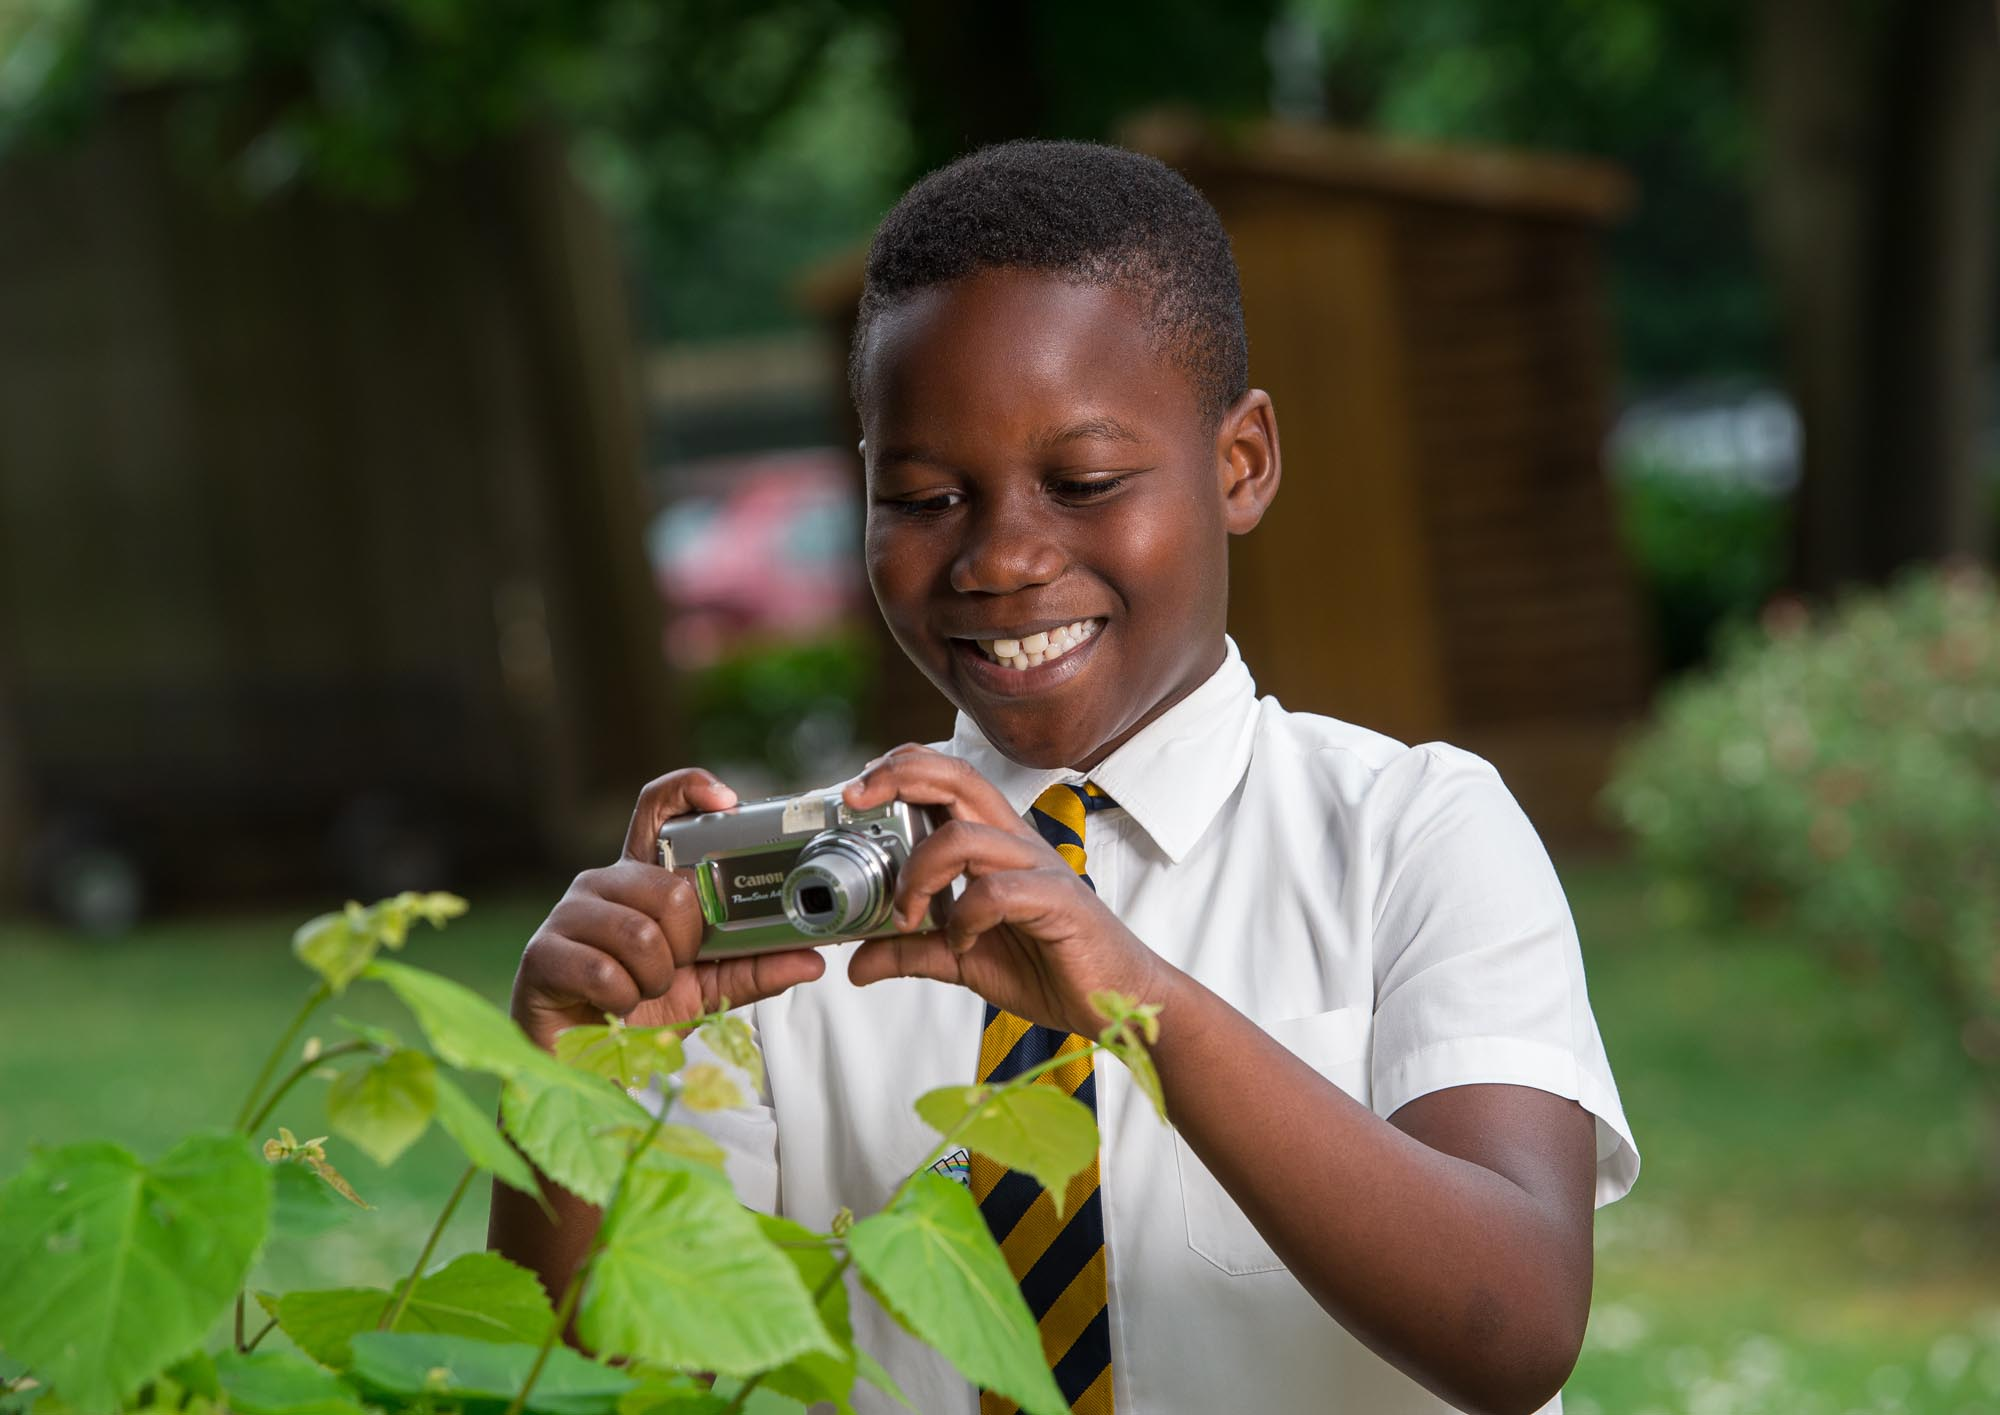 Boy taking photographs of plants